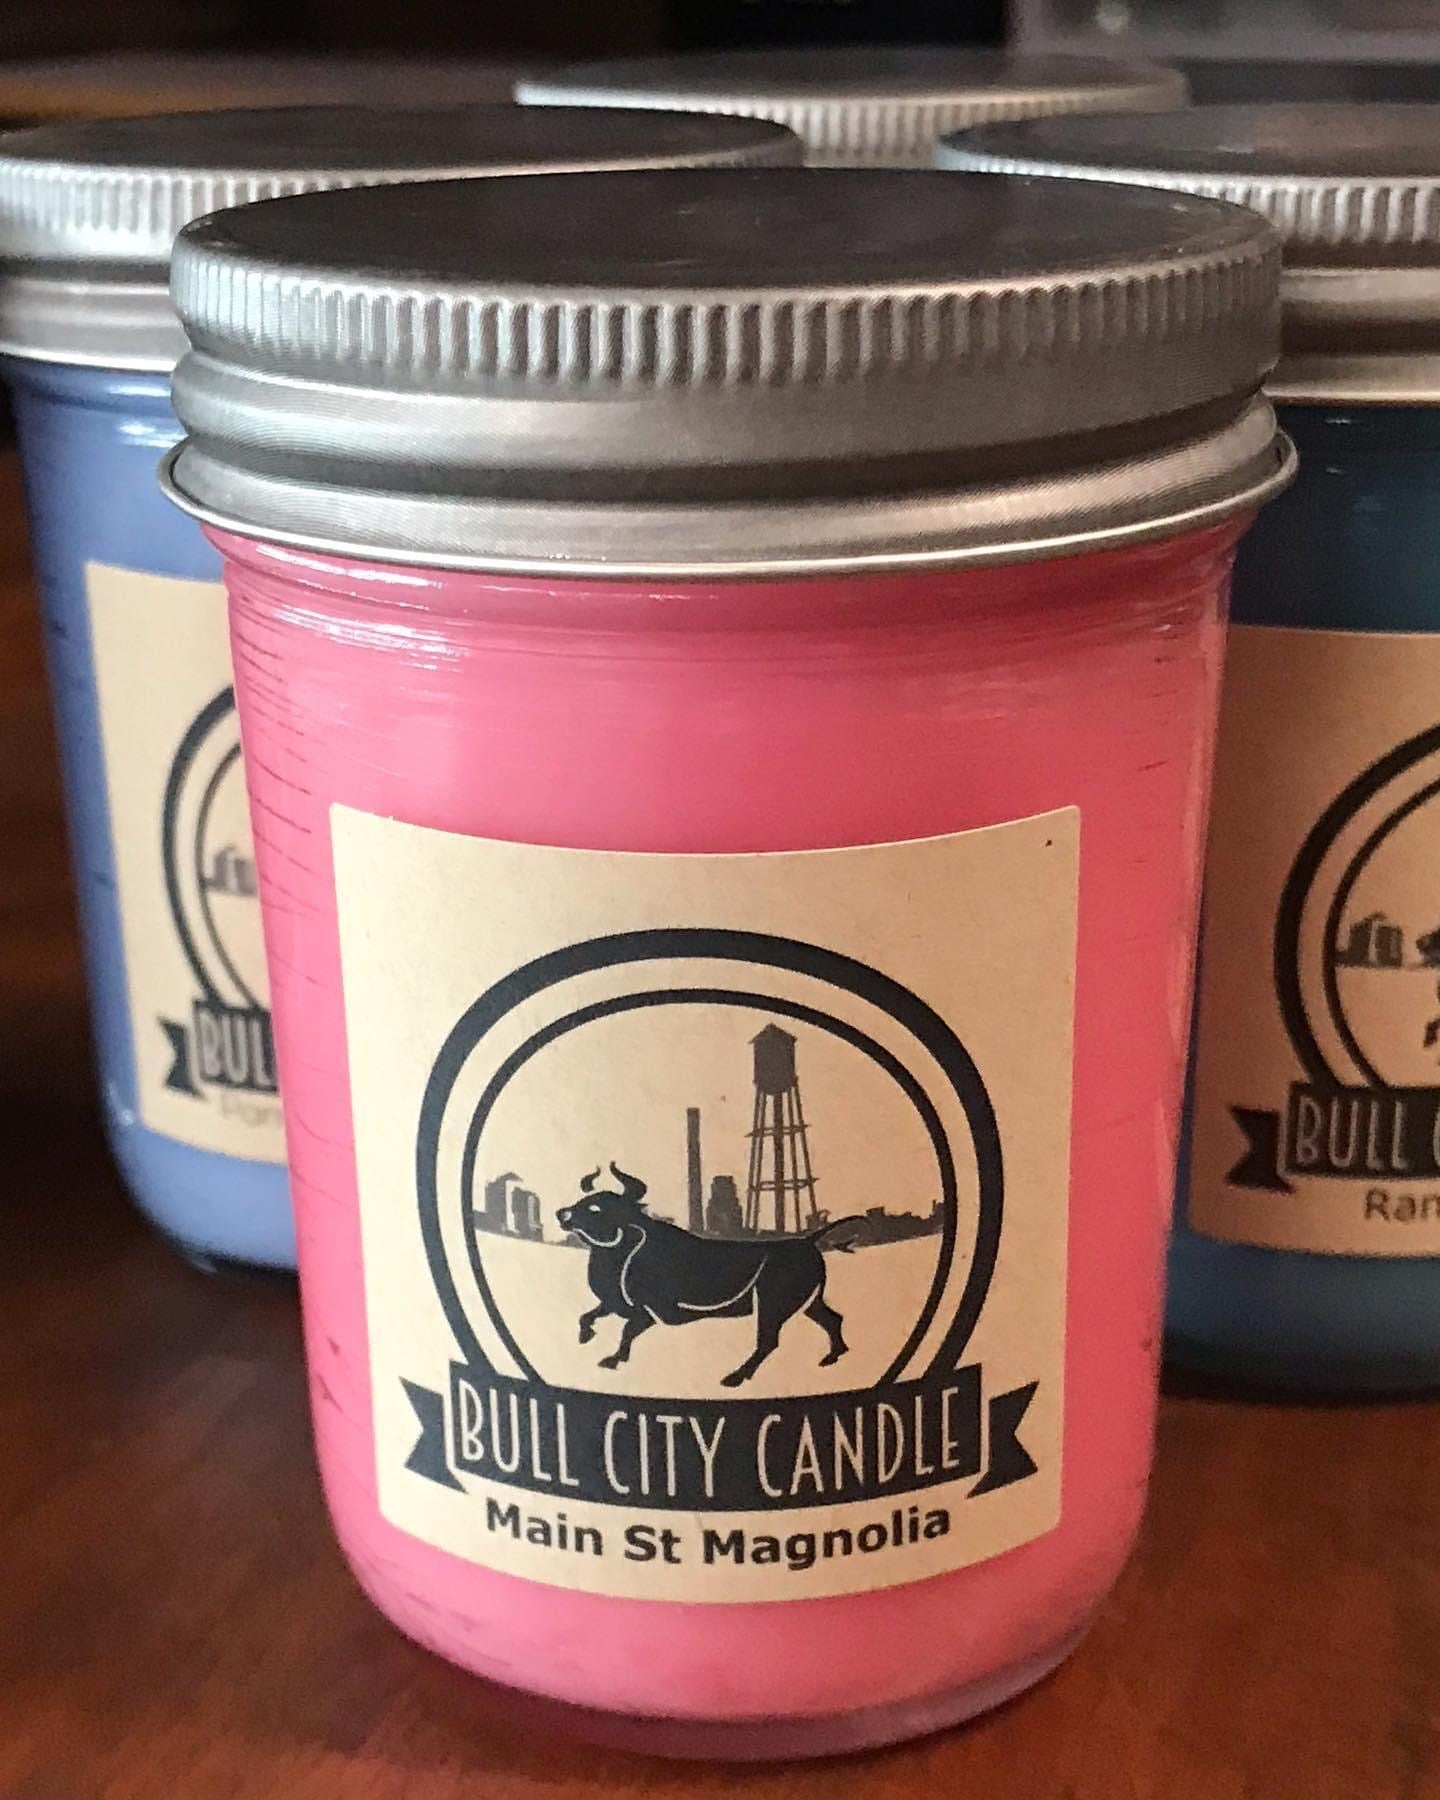 Bull City Candle 8oz